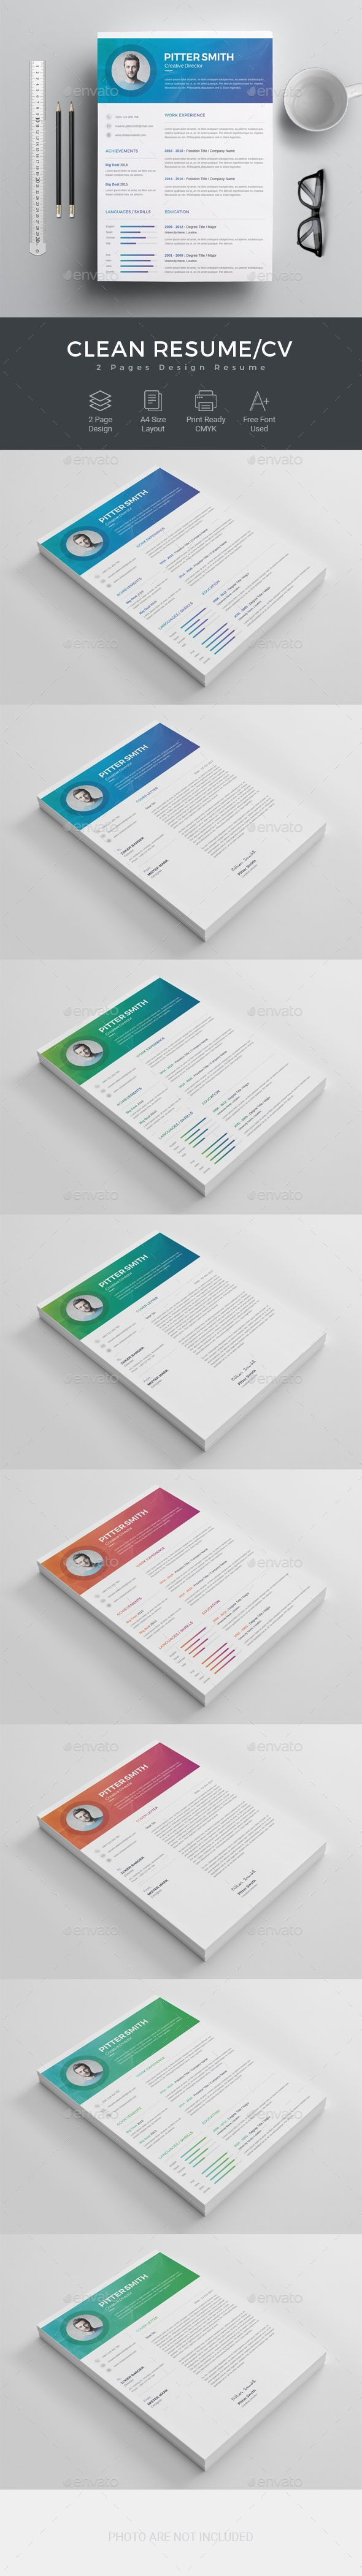 Resume - Resumes #Stationery Download here: https://graphicriver.net ...